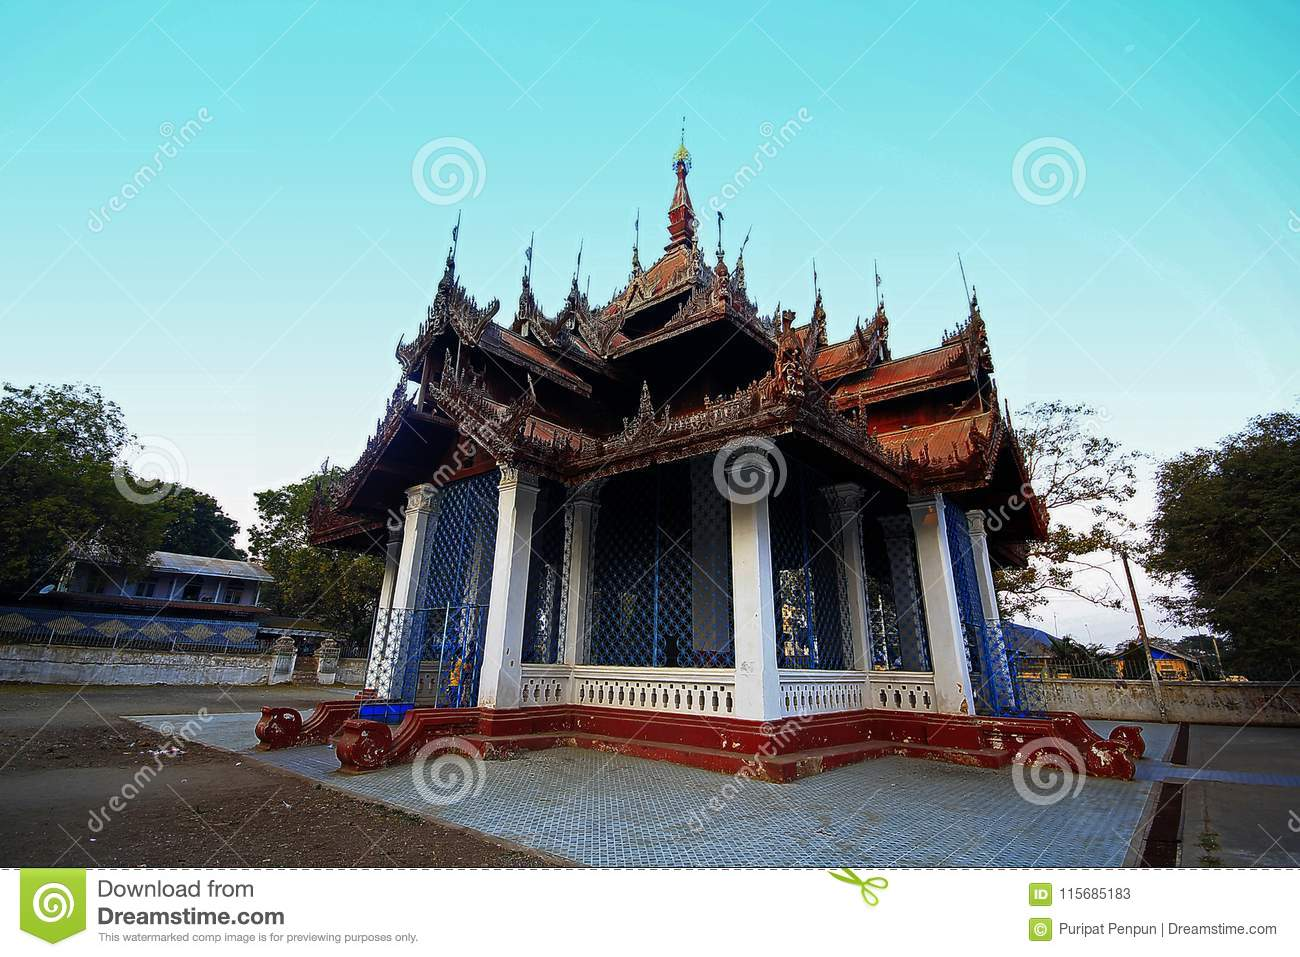 The old temple in Myanmar built a long time.